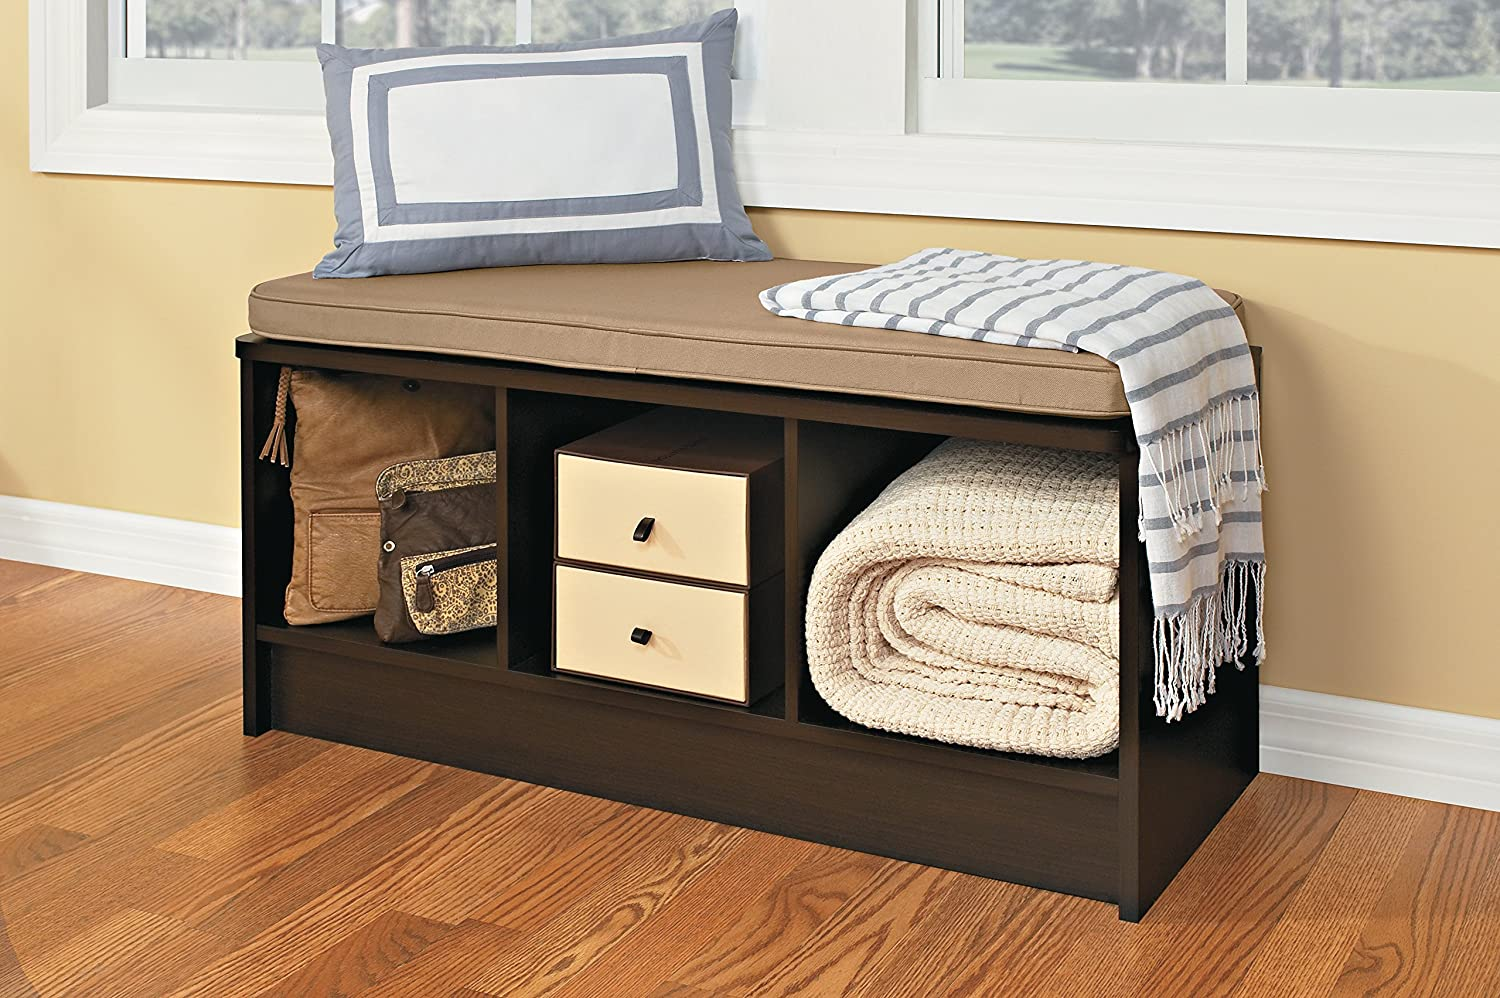 Kitchen Entryway Entryway Bench With Shoe Storage Mud Room Bench With Enclosed